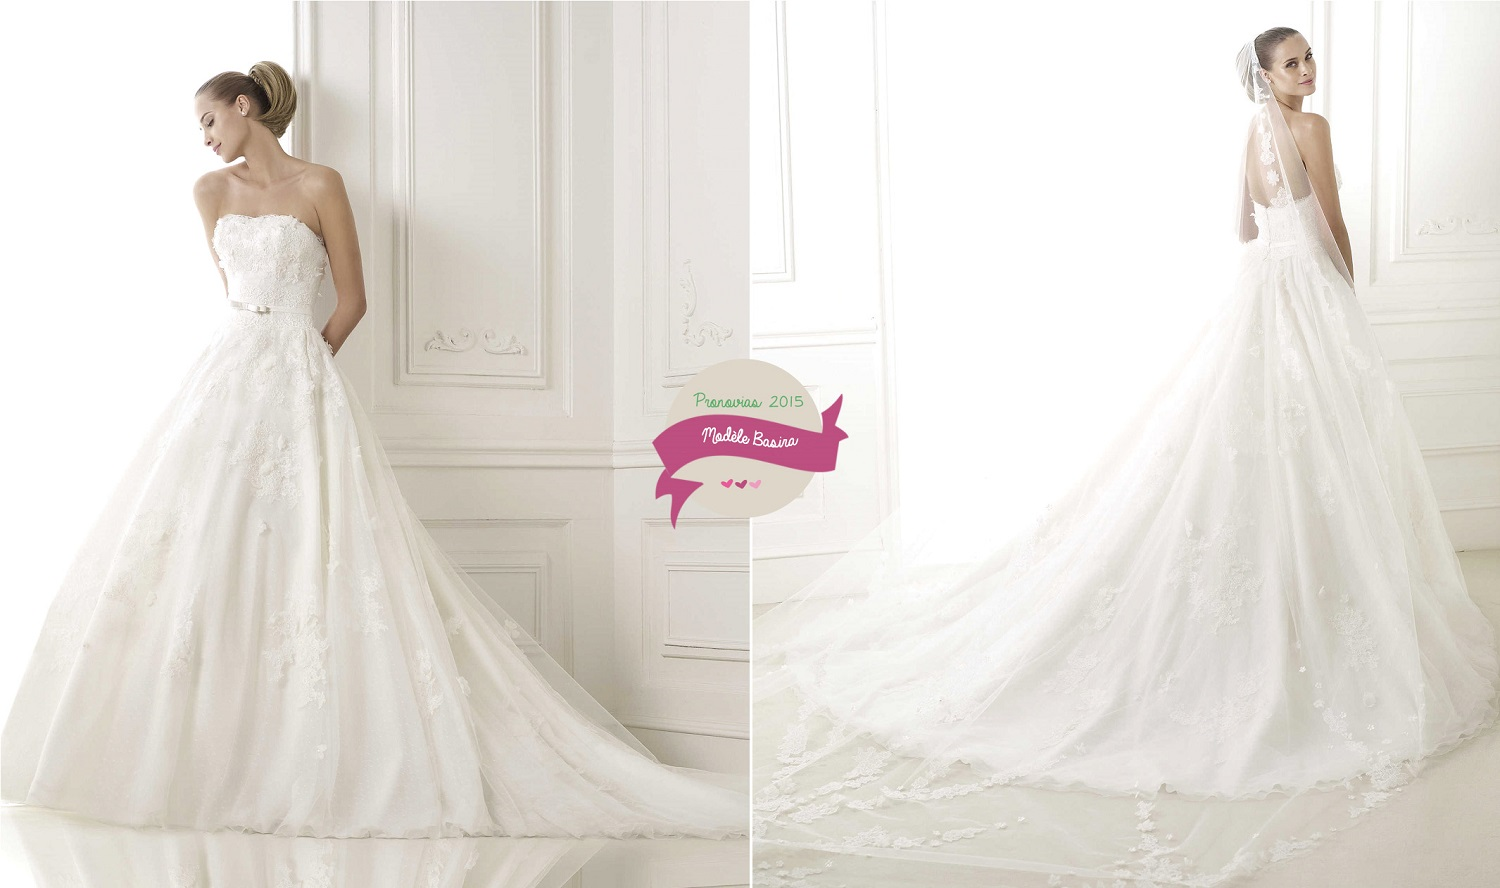 37a9fa6bb97f5 Robe de mariée Pronovias   Collection 2015